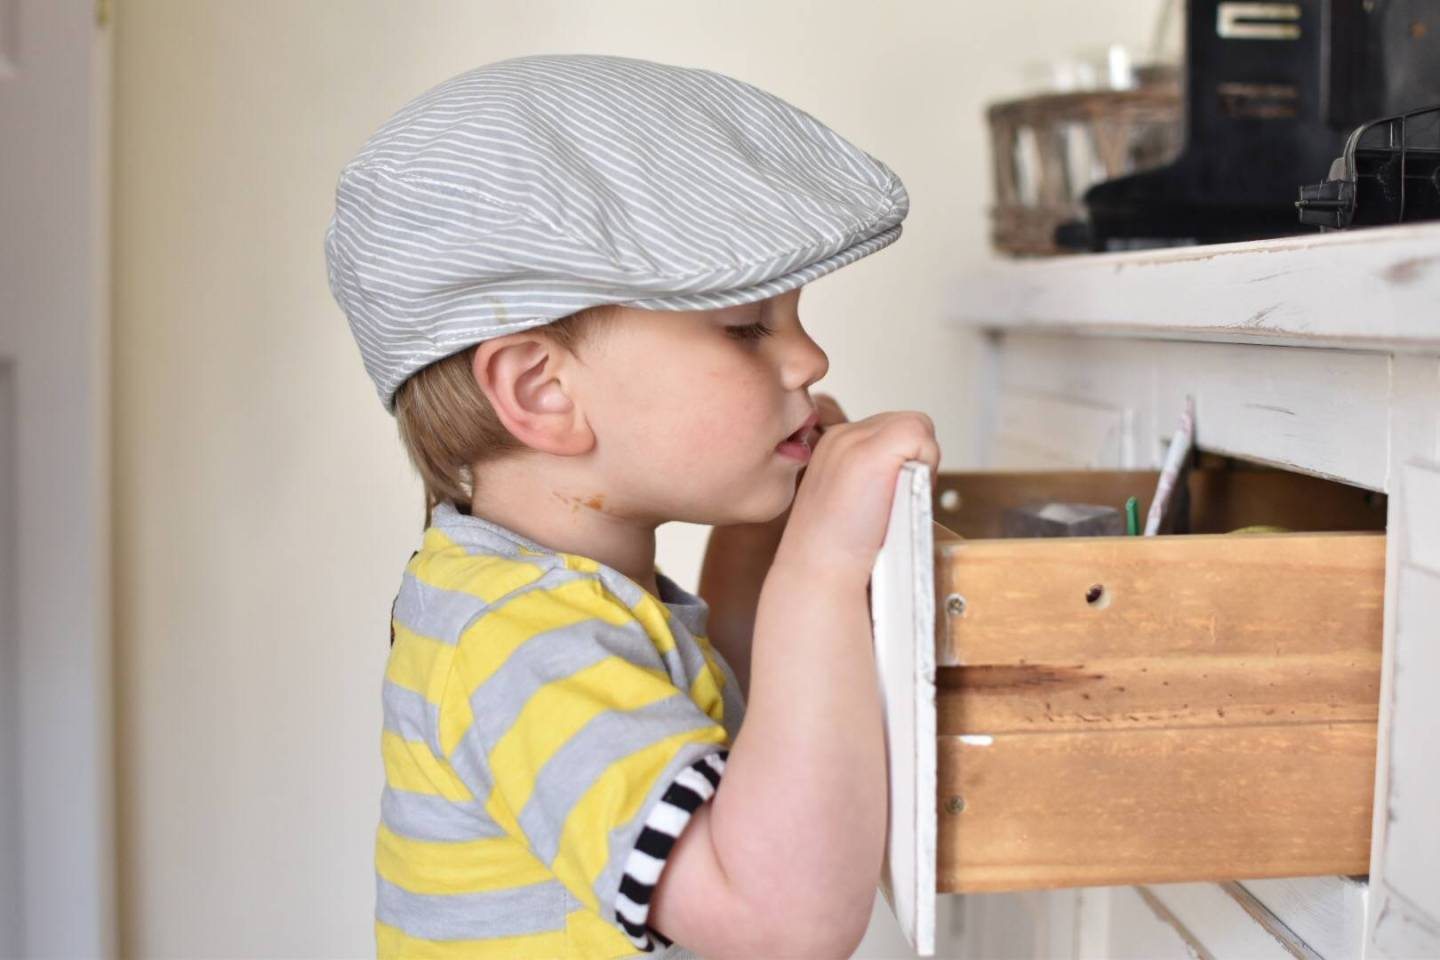 Tips on keeping your home toddler safe